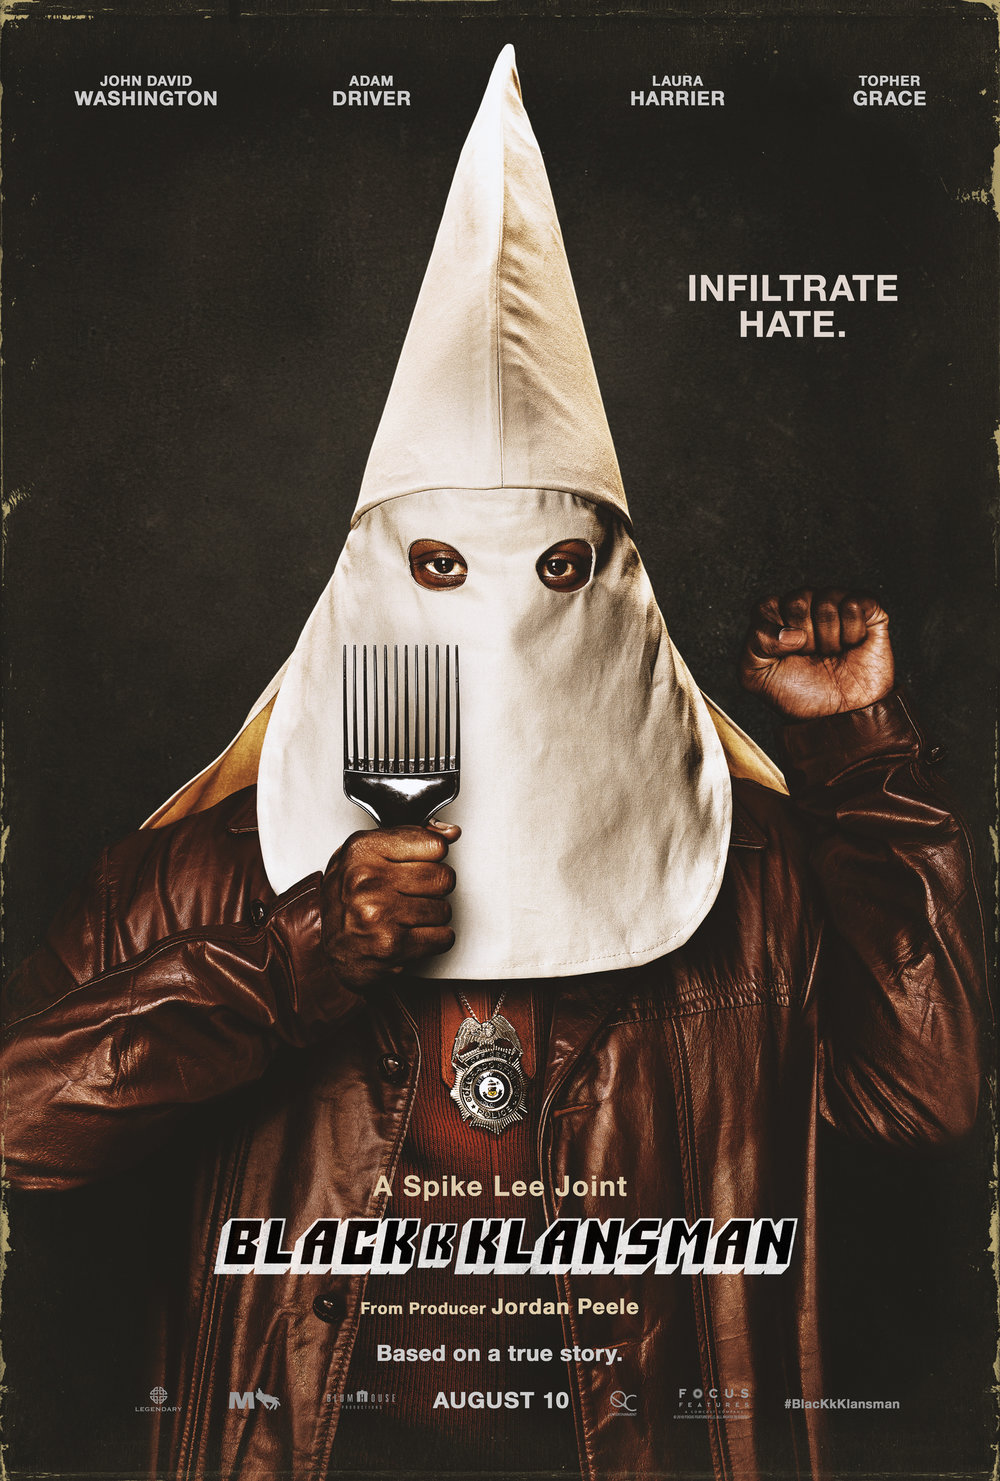 Another incredibly subversive but fascinating movie, BlacKkKlansman offered an incredibly sharp rebuke of white supremacy in a time when Americans grappled with the issue themselves. The movie is dripping with style, and Topher Grace turns in an unexpectedly genius performance. -